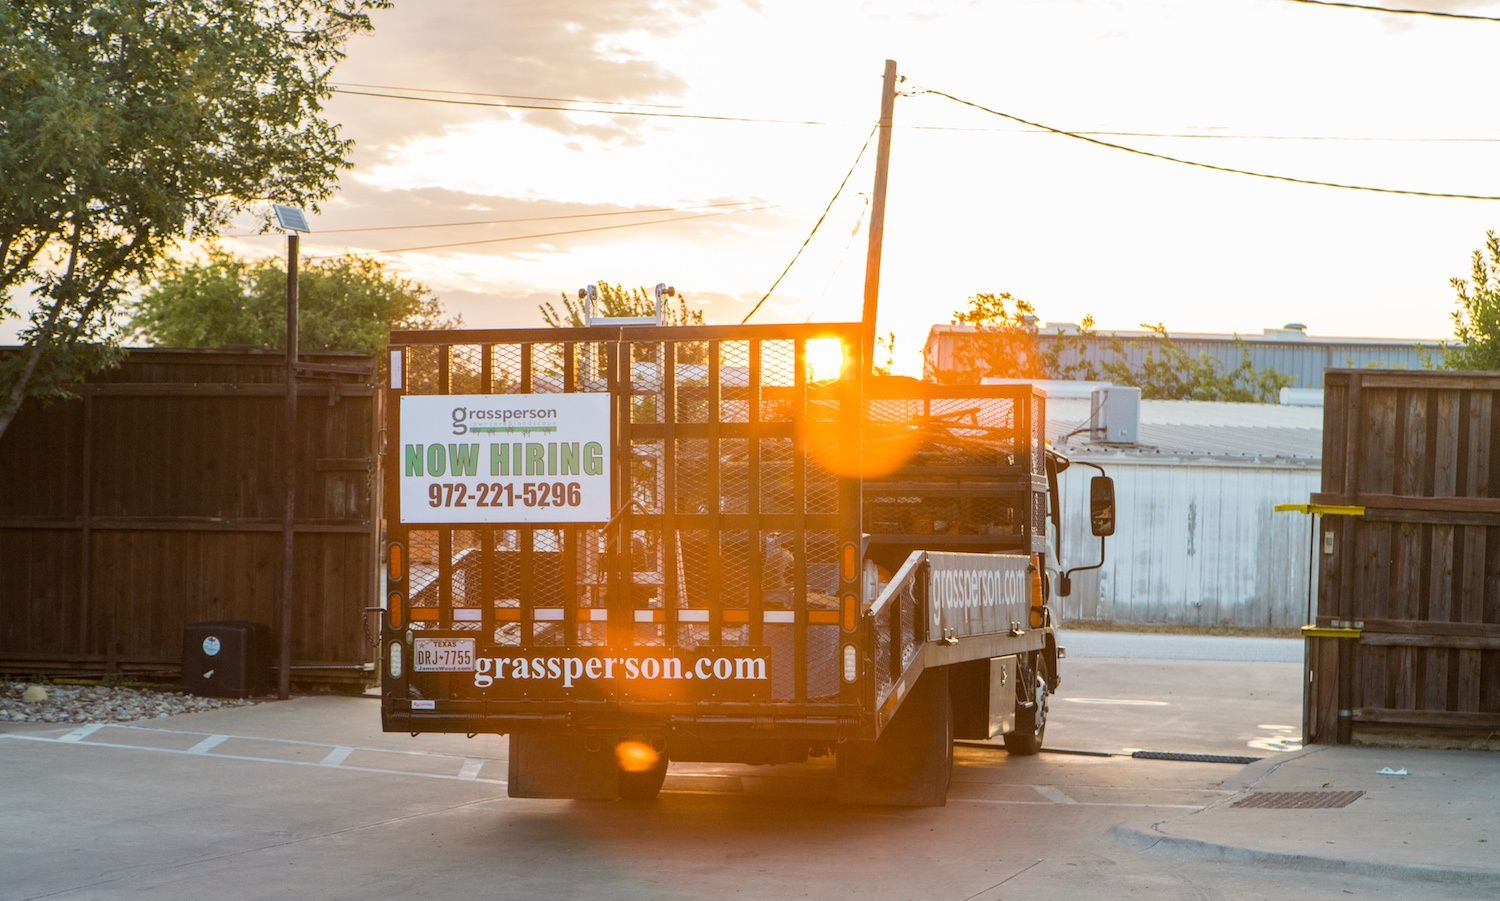 Grassperson truck with Now Hiring sign in Lewisville, TX